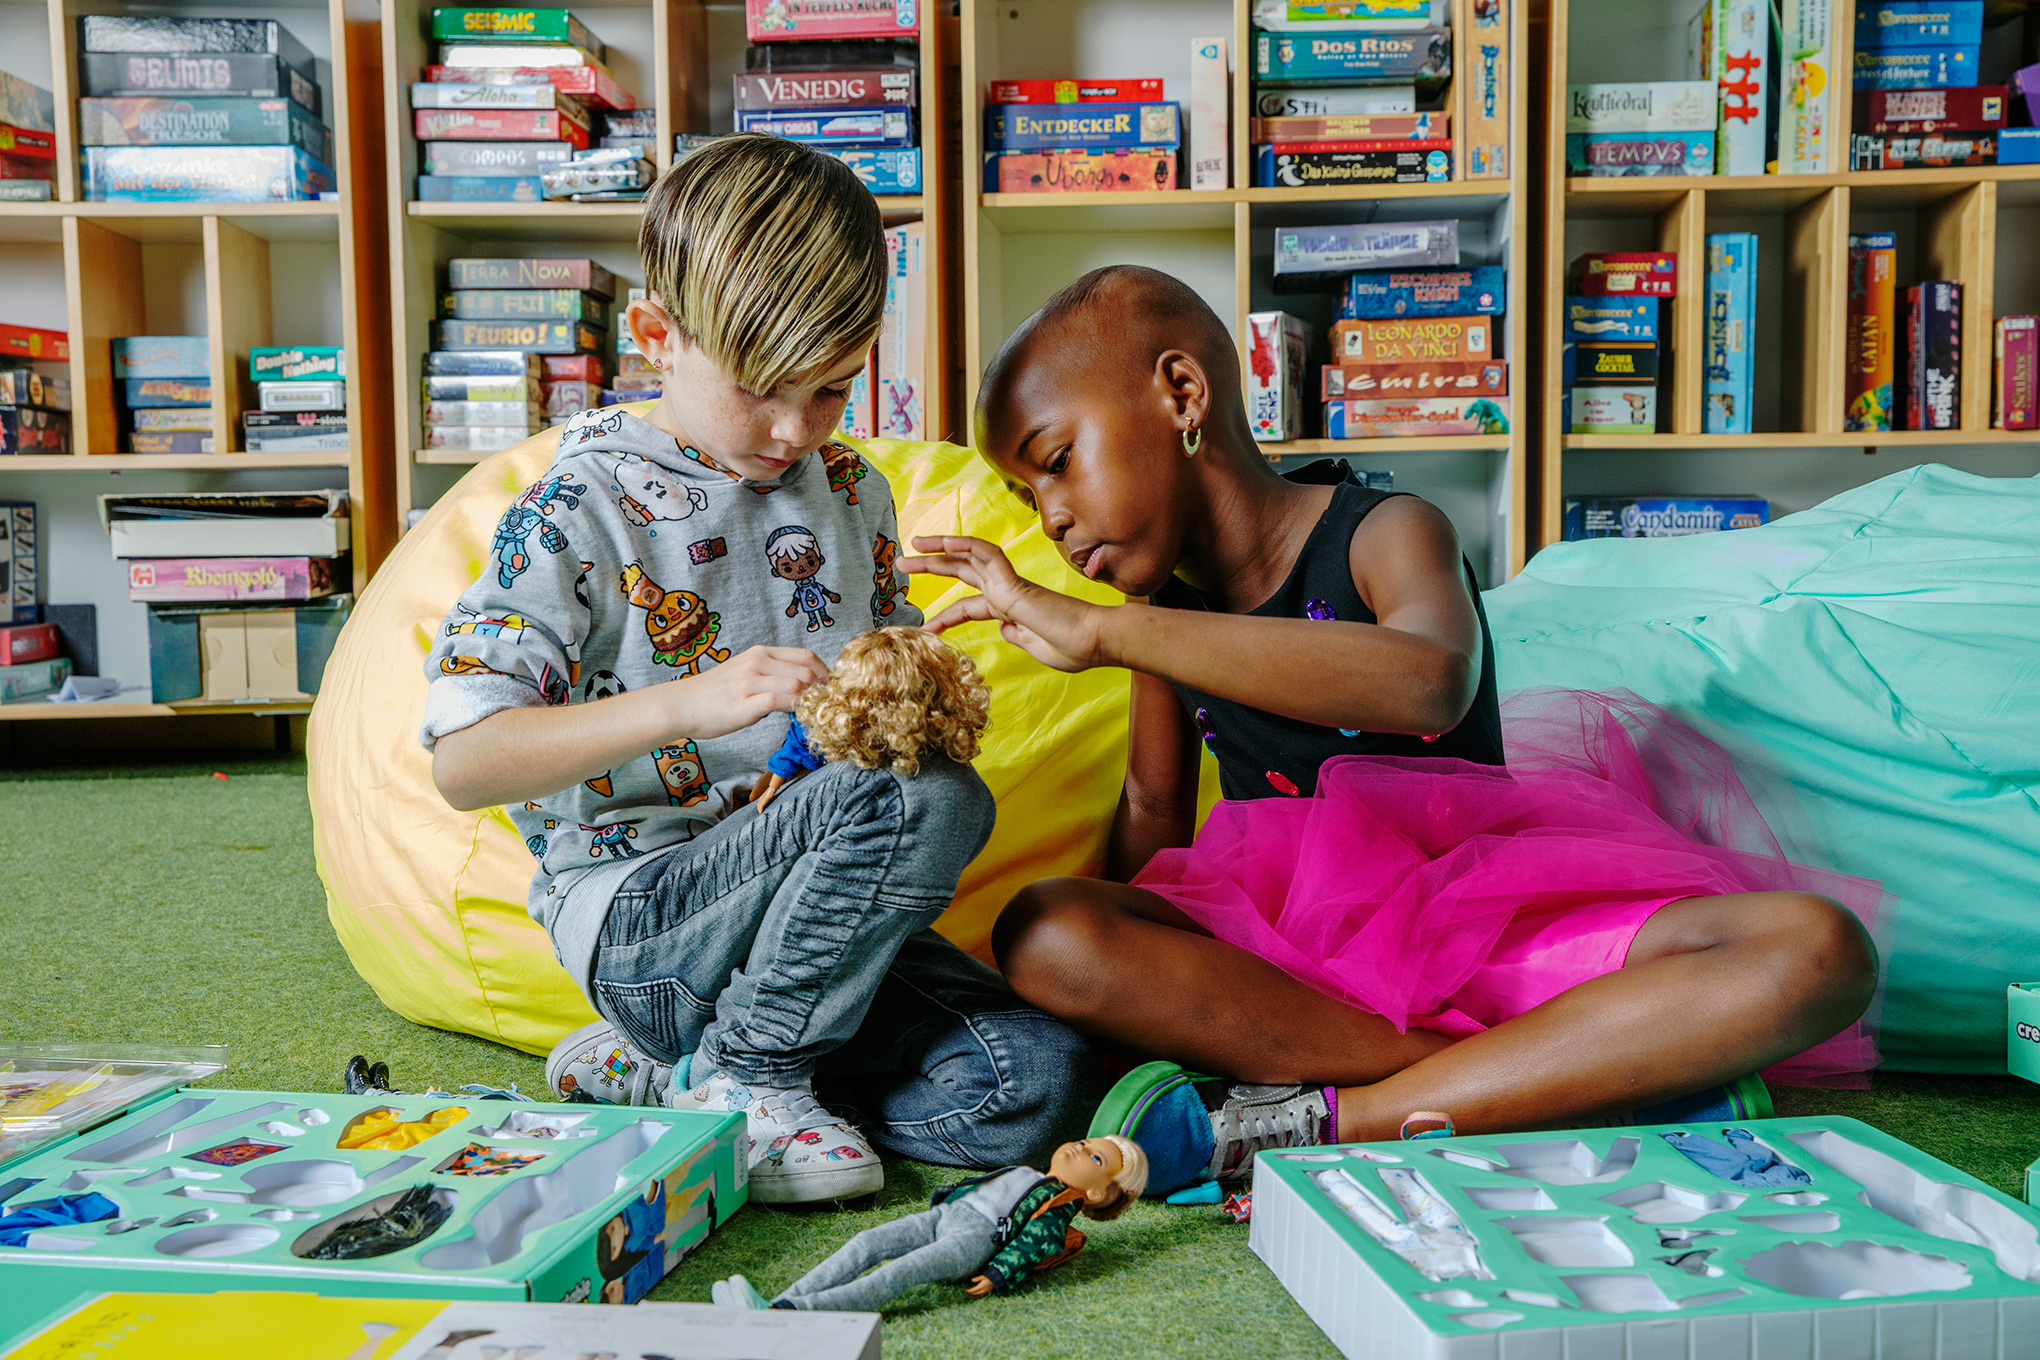 Shi'a, left, and Jhase play with Mattel's gender-neutral doll